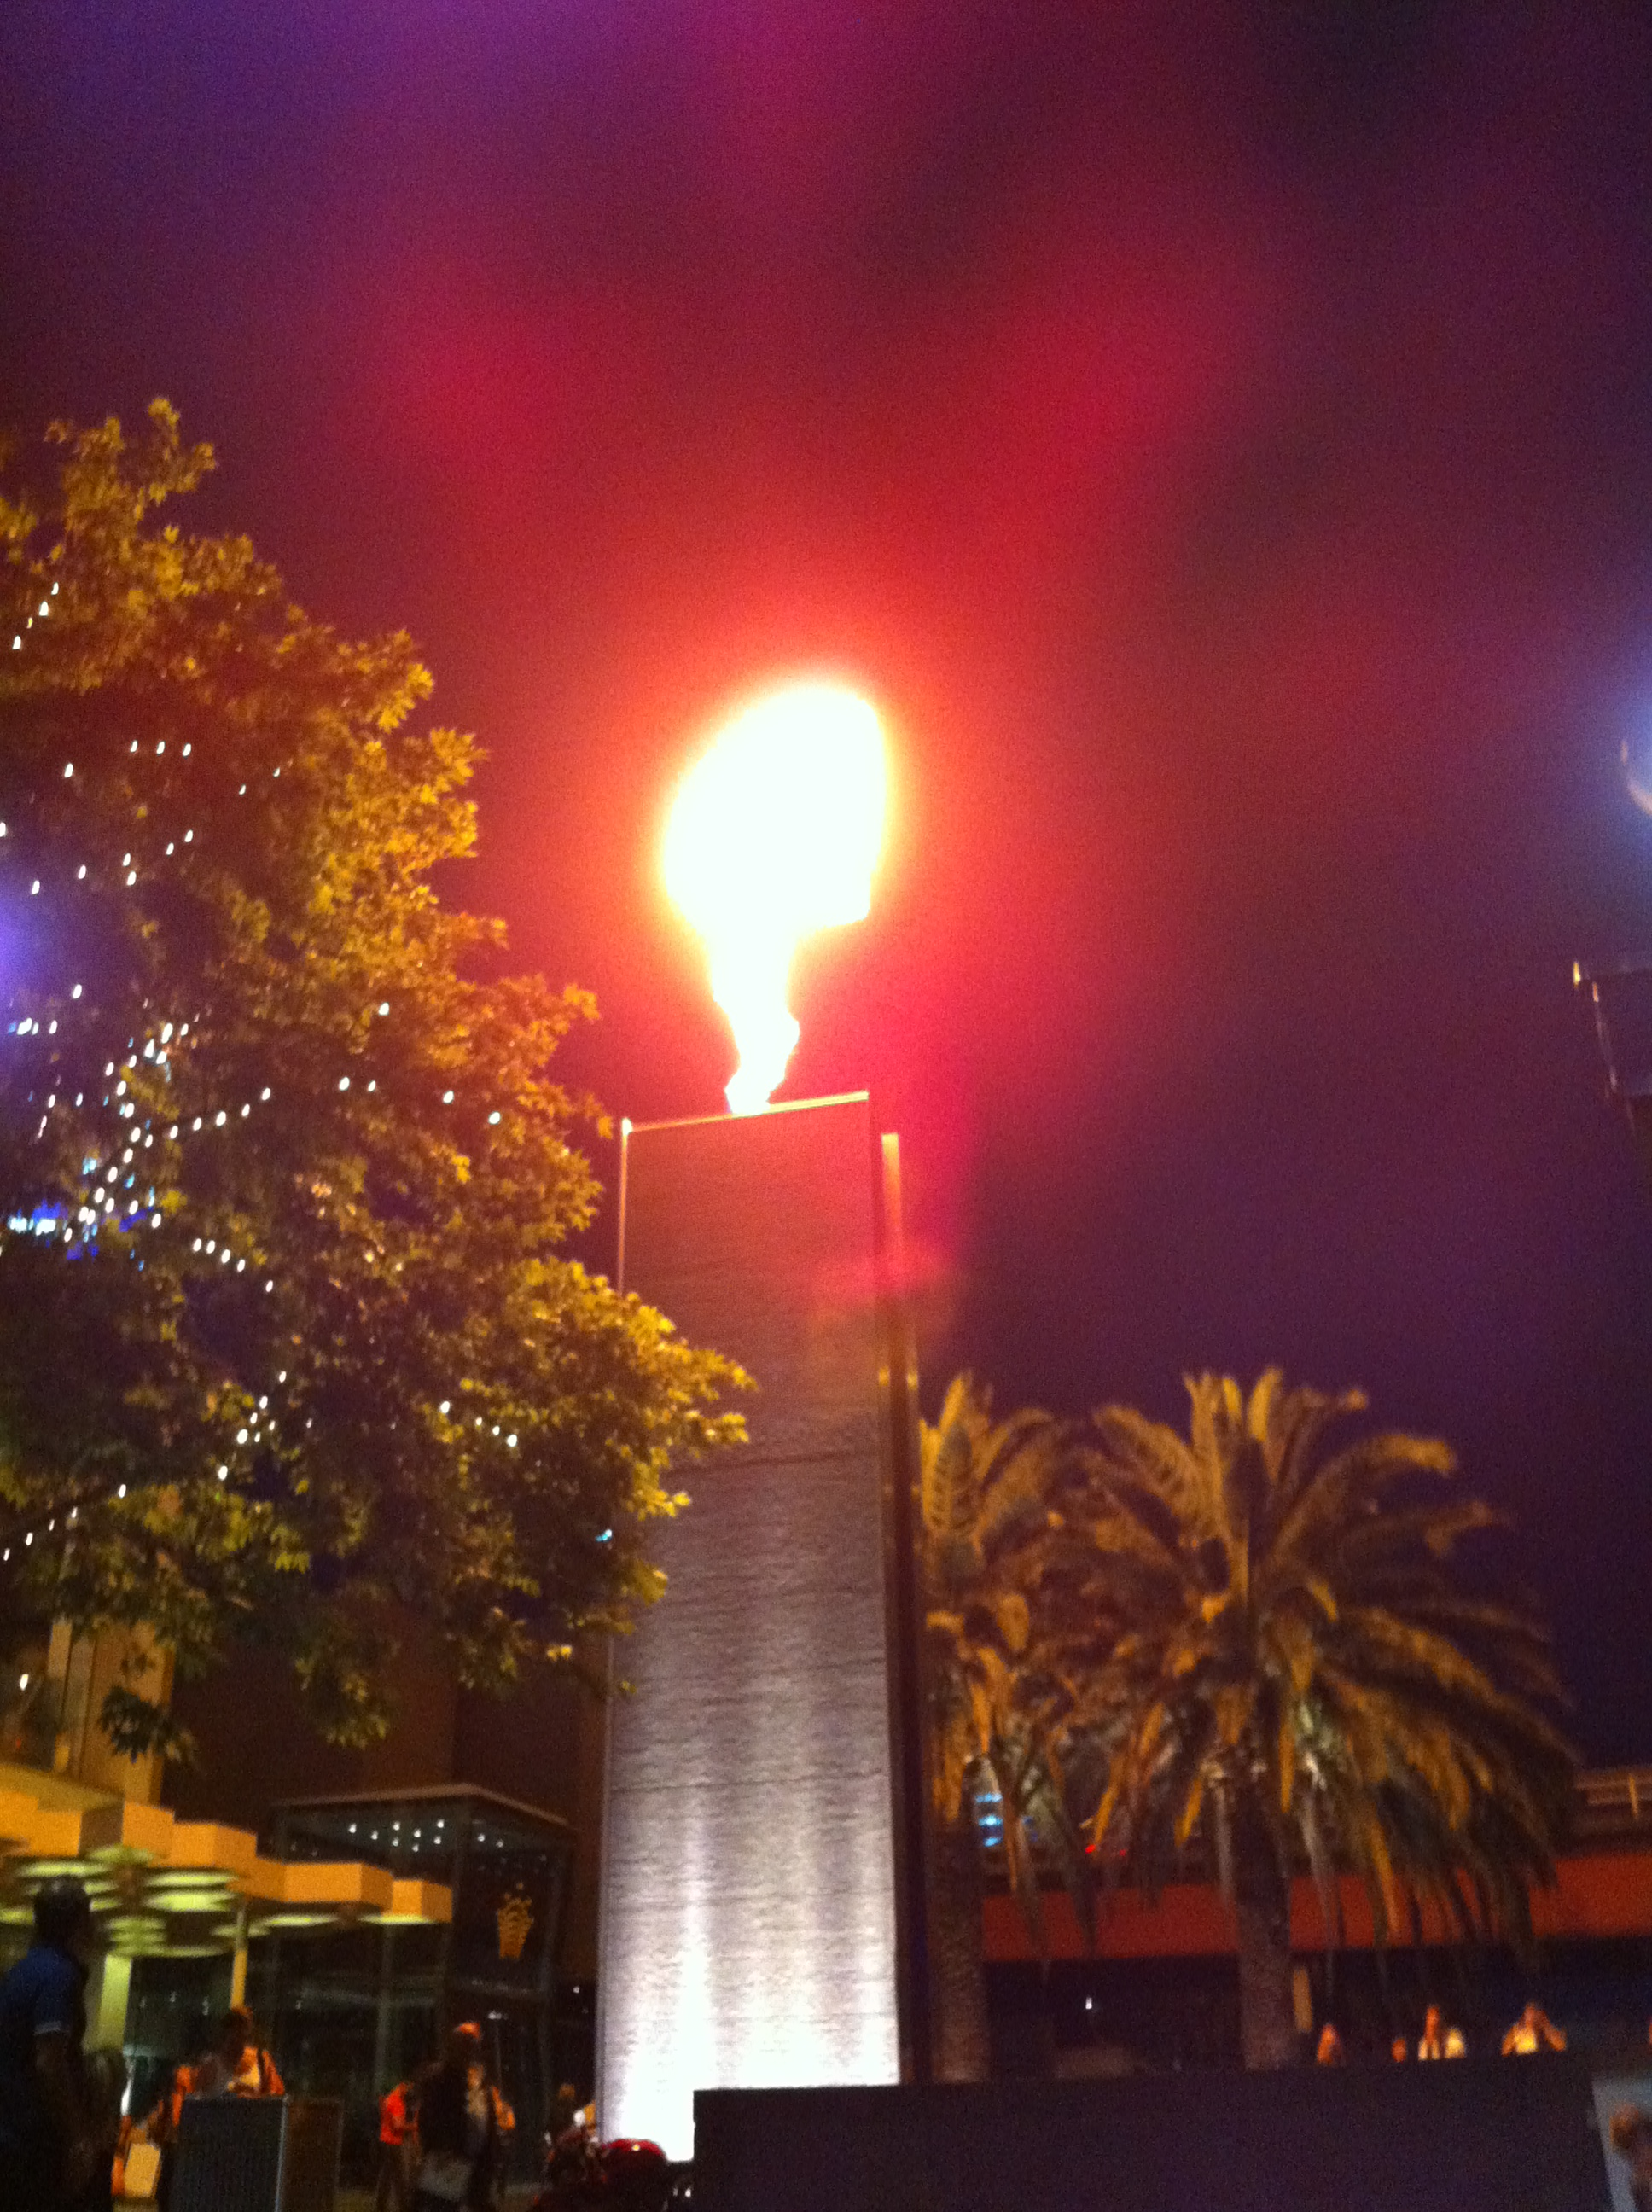 Flames outside crown casino